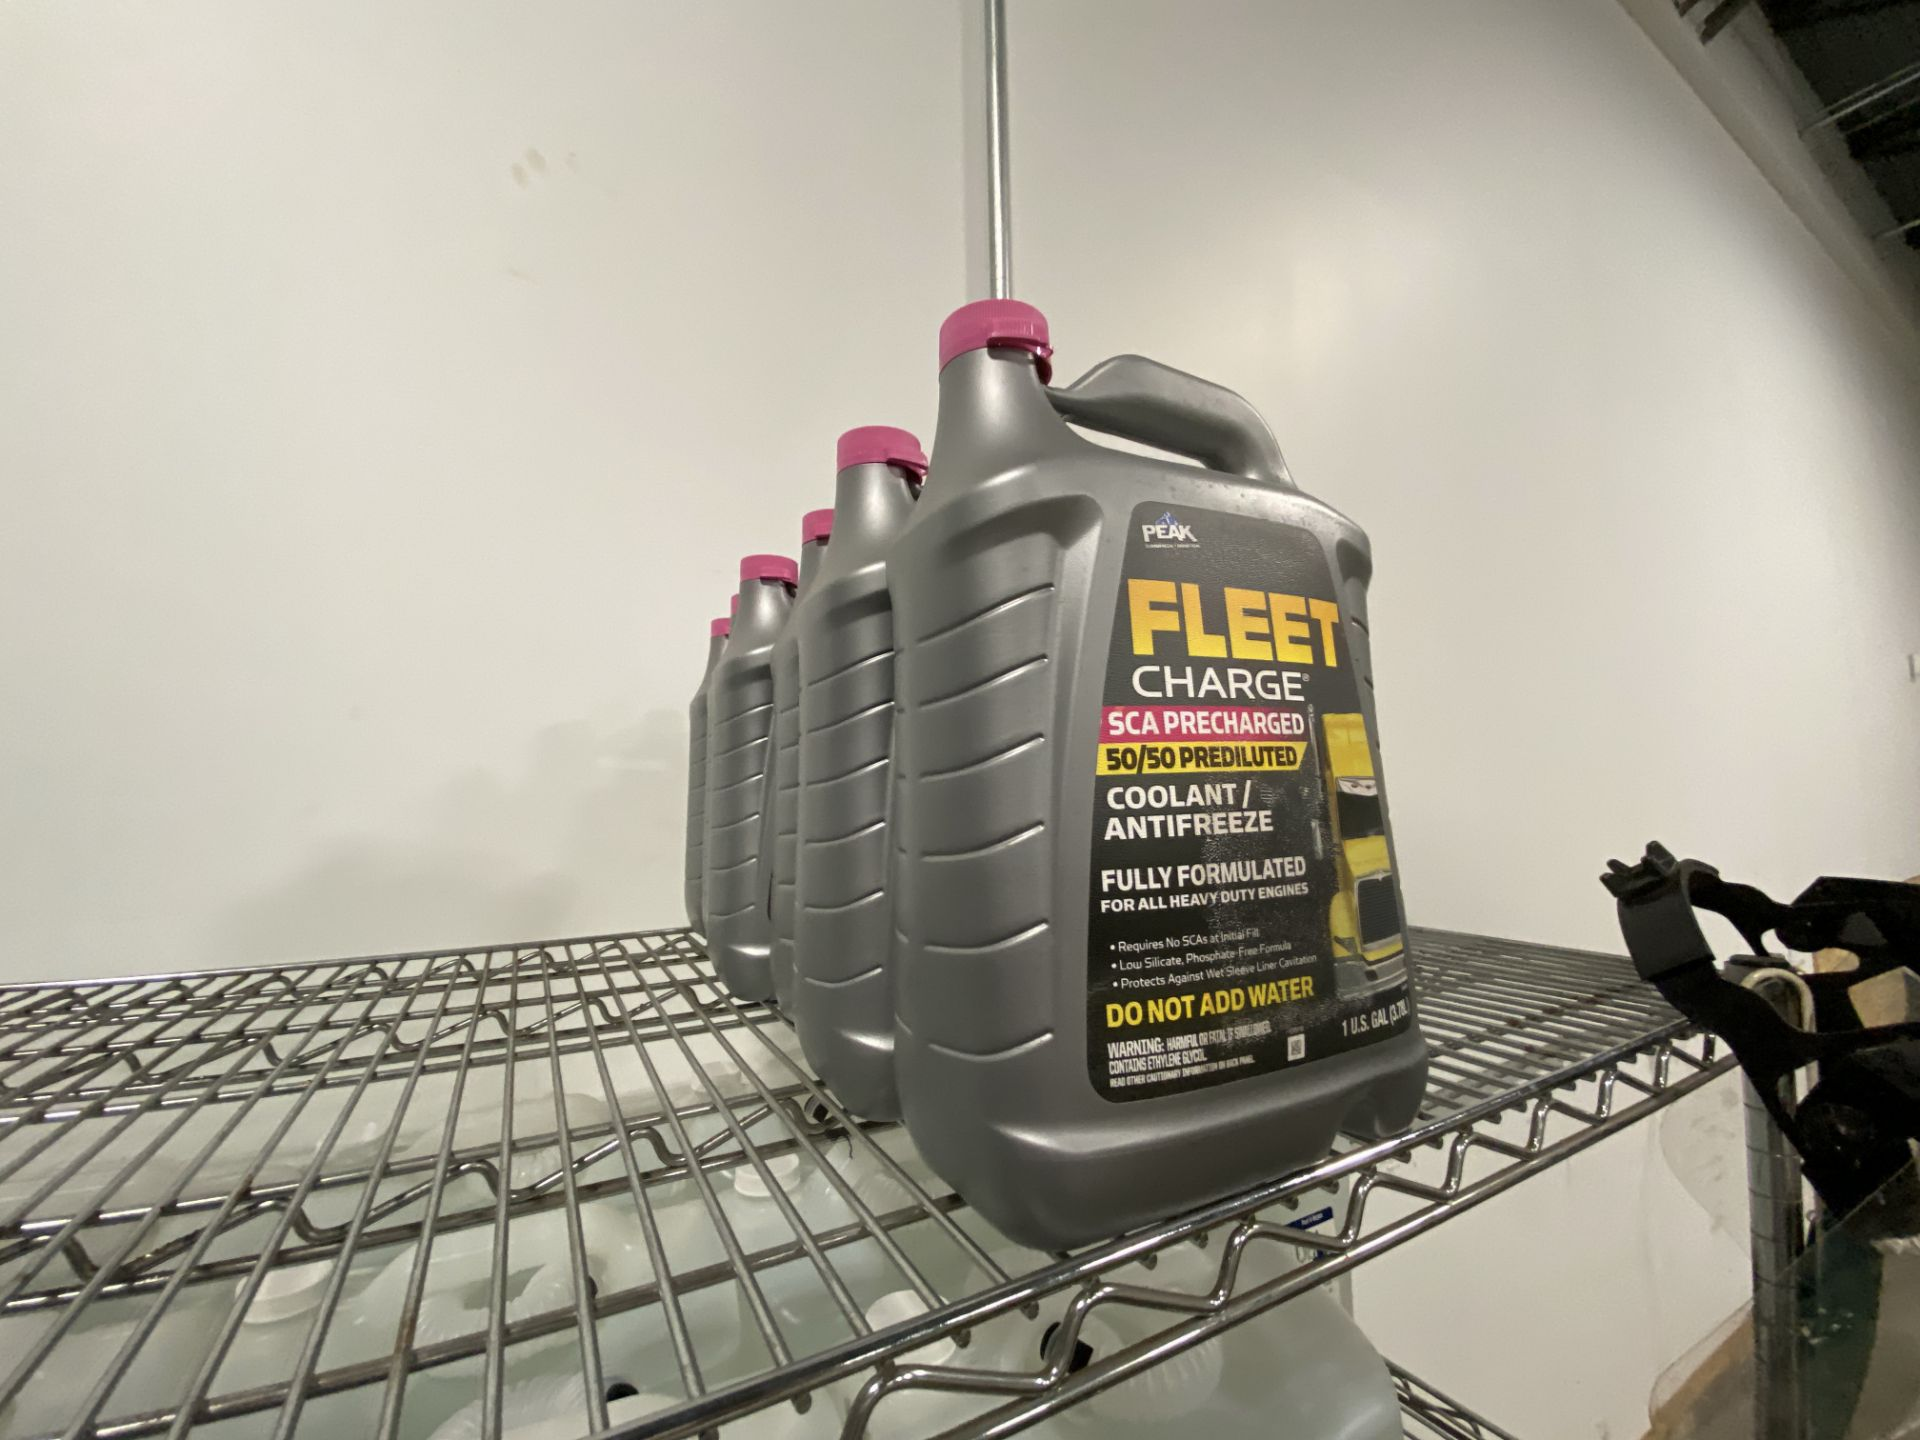 """6' X 24"""" X 4 tier Metro rack with contens including (6) gallons of commercial truck antifreeze, (33) - Image 2 of 5"""